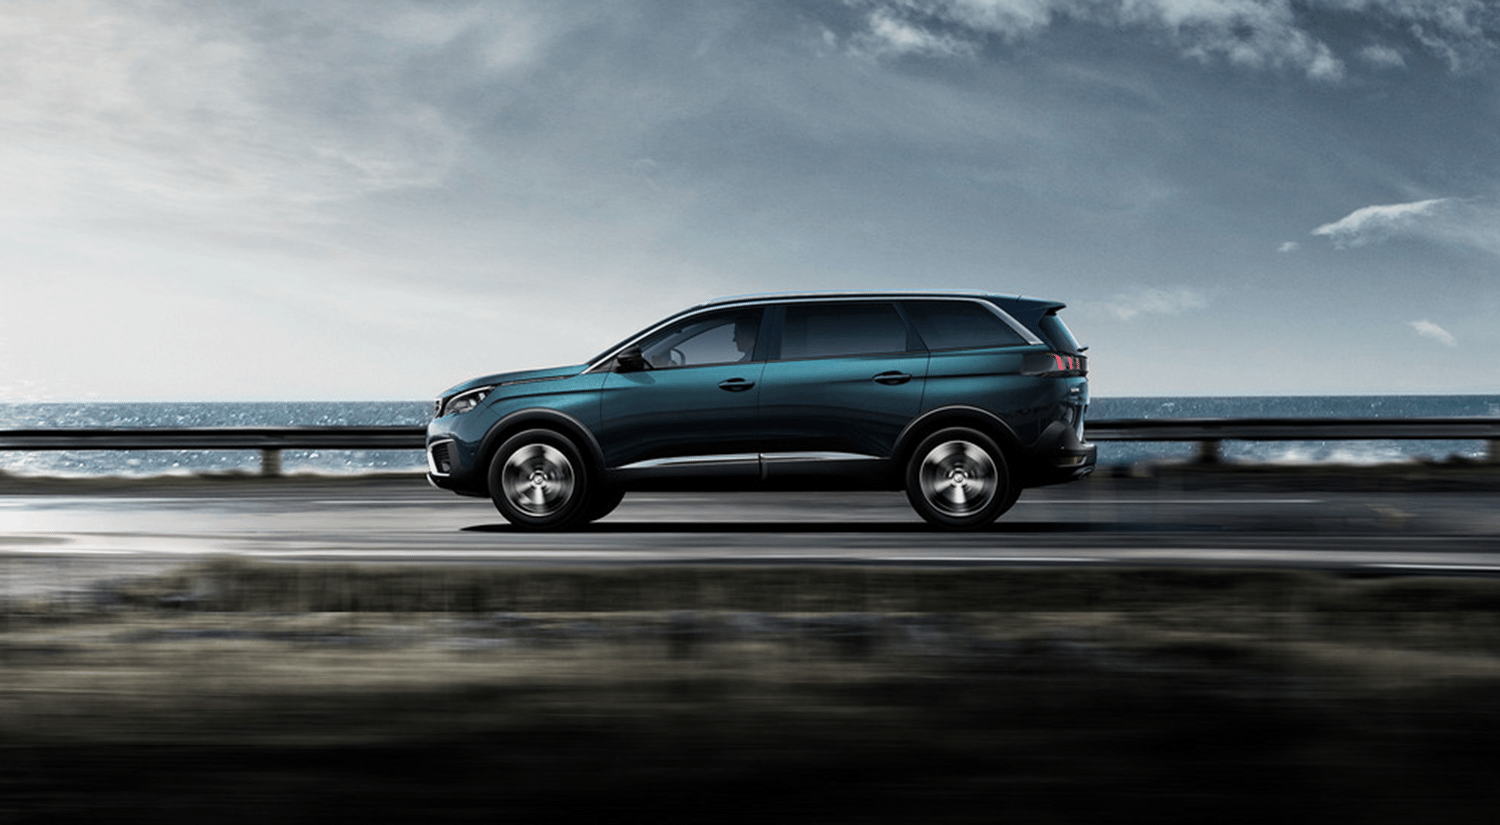 Side view Peugeot 5008 SUV driving